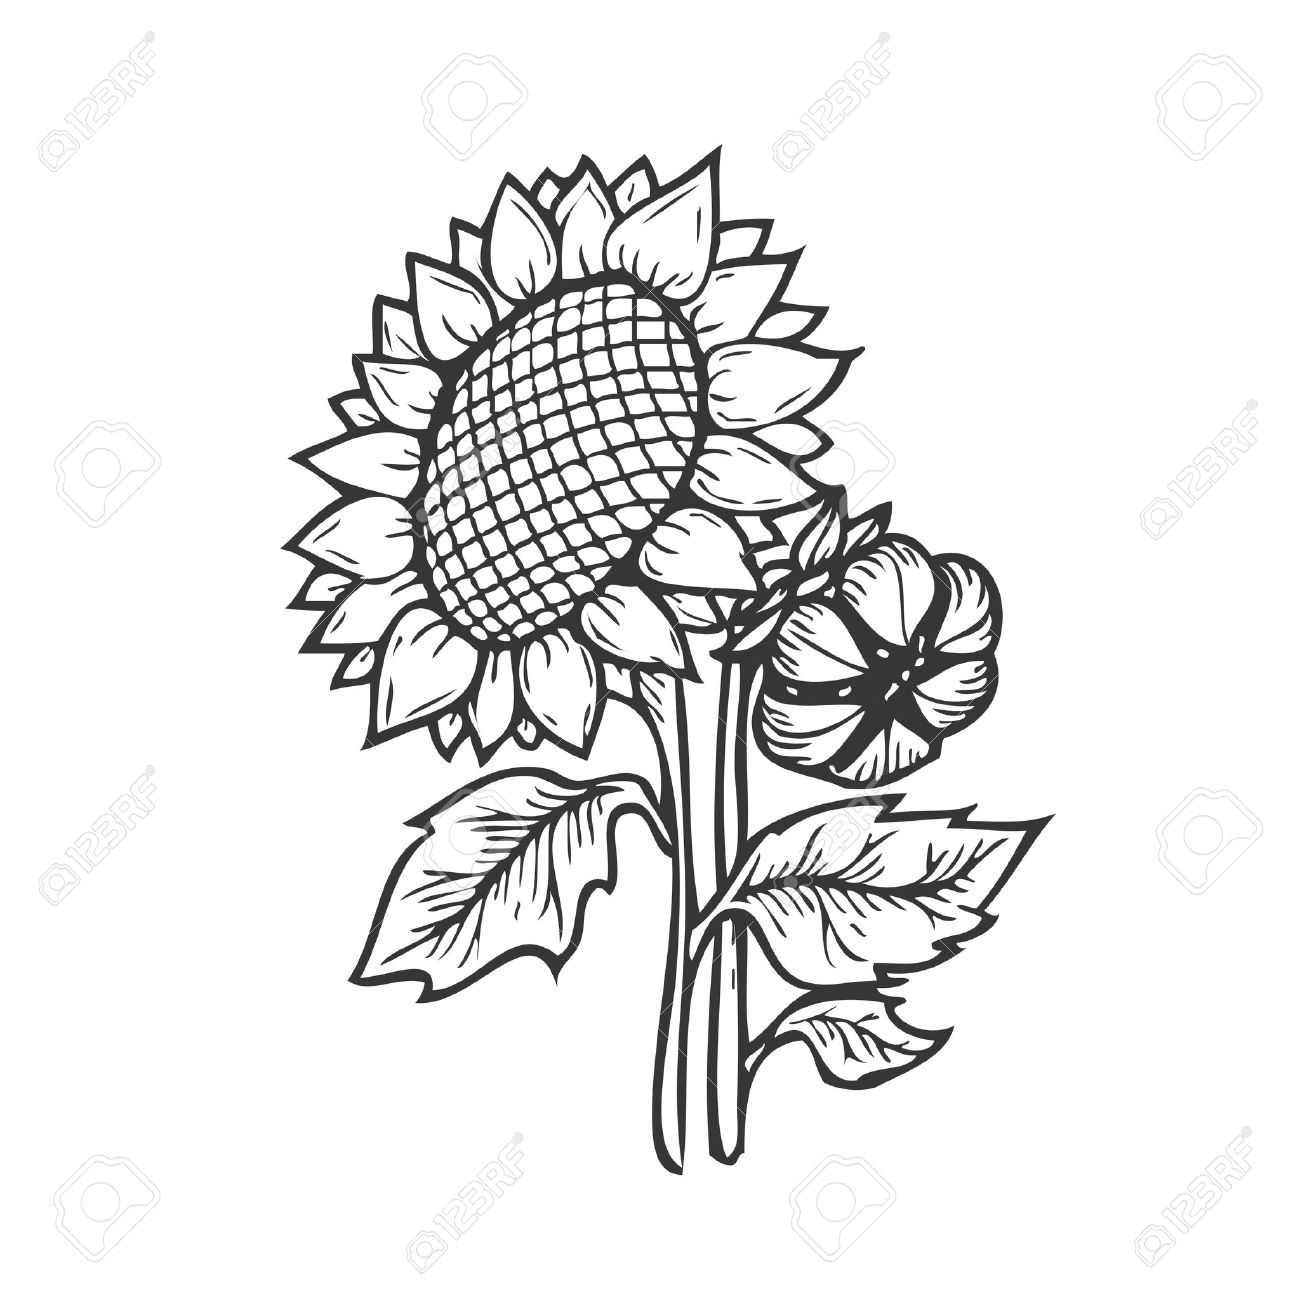 Sunflower Engraving. Vector Hand Drawn Sunflowers Illustration ... for Clipart Sunflower Black And White  181obs